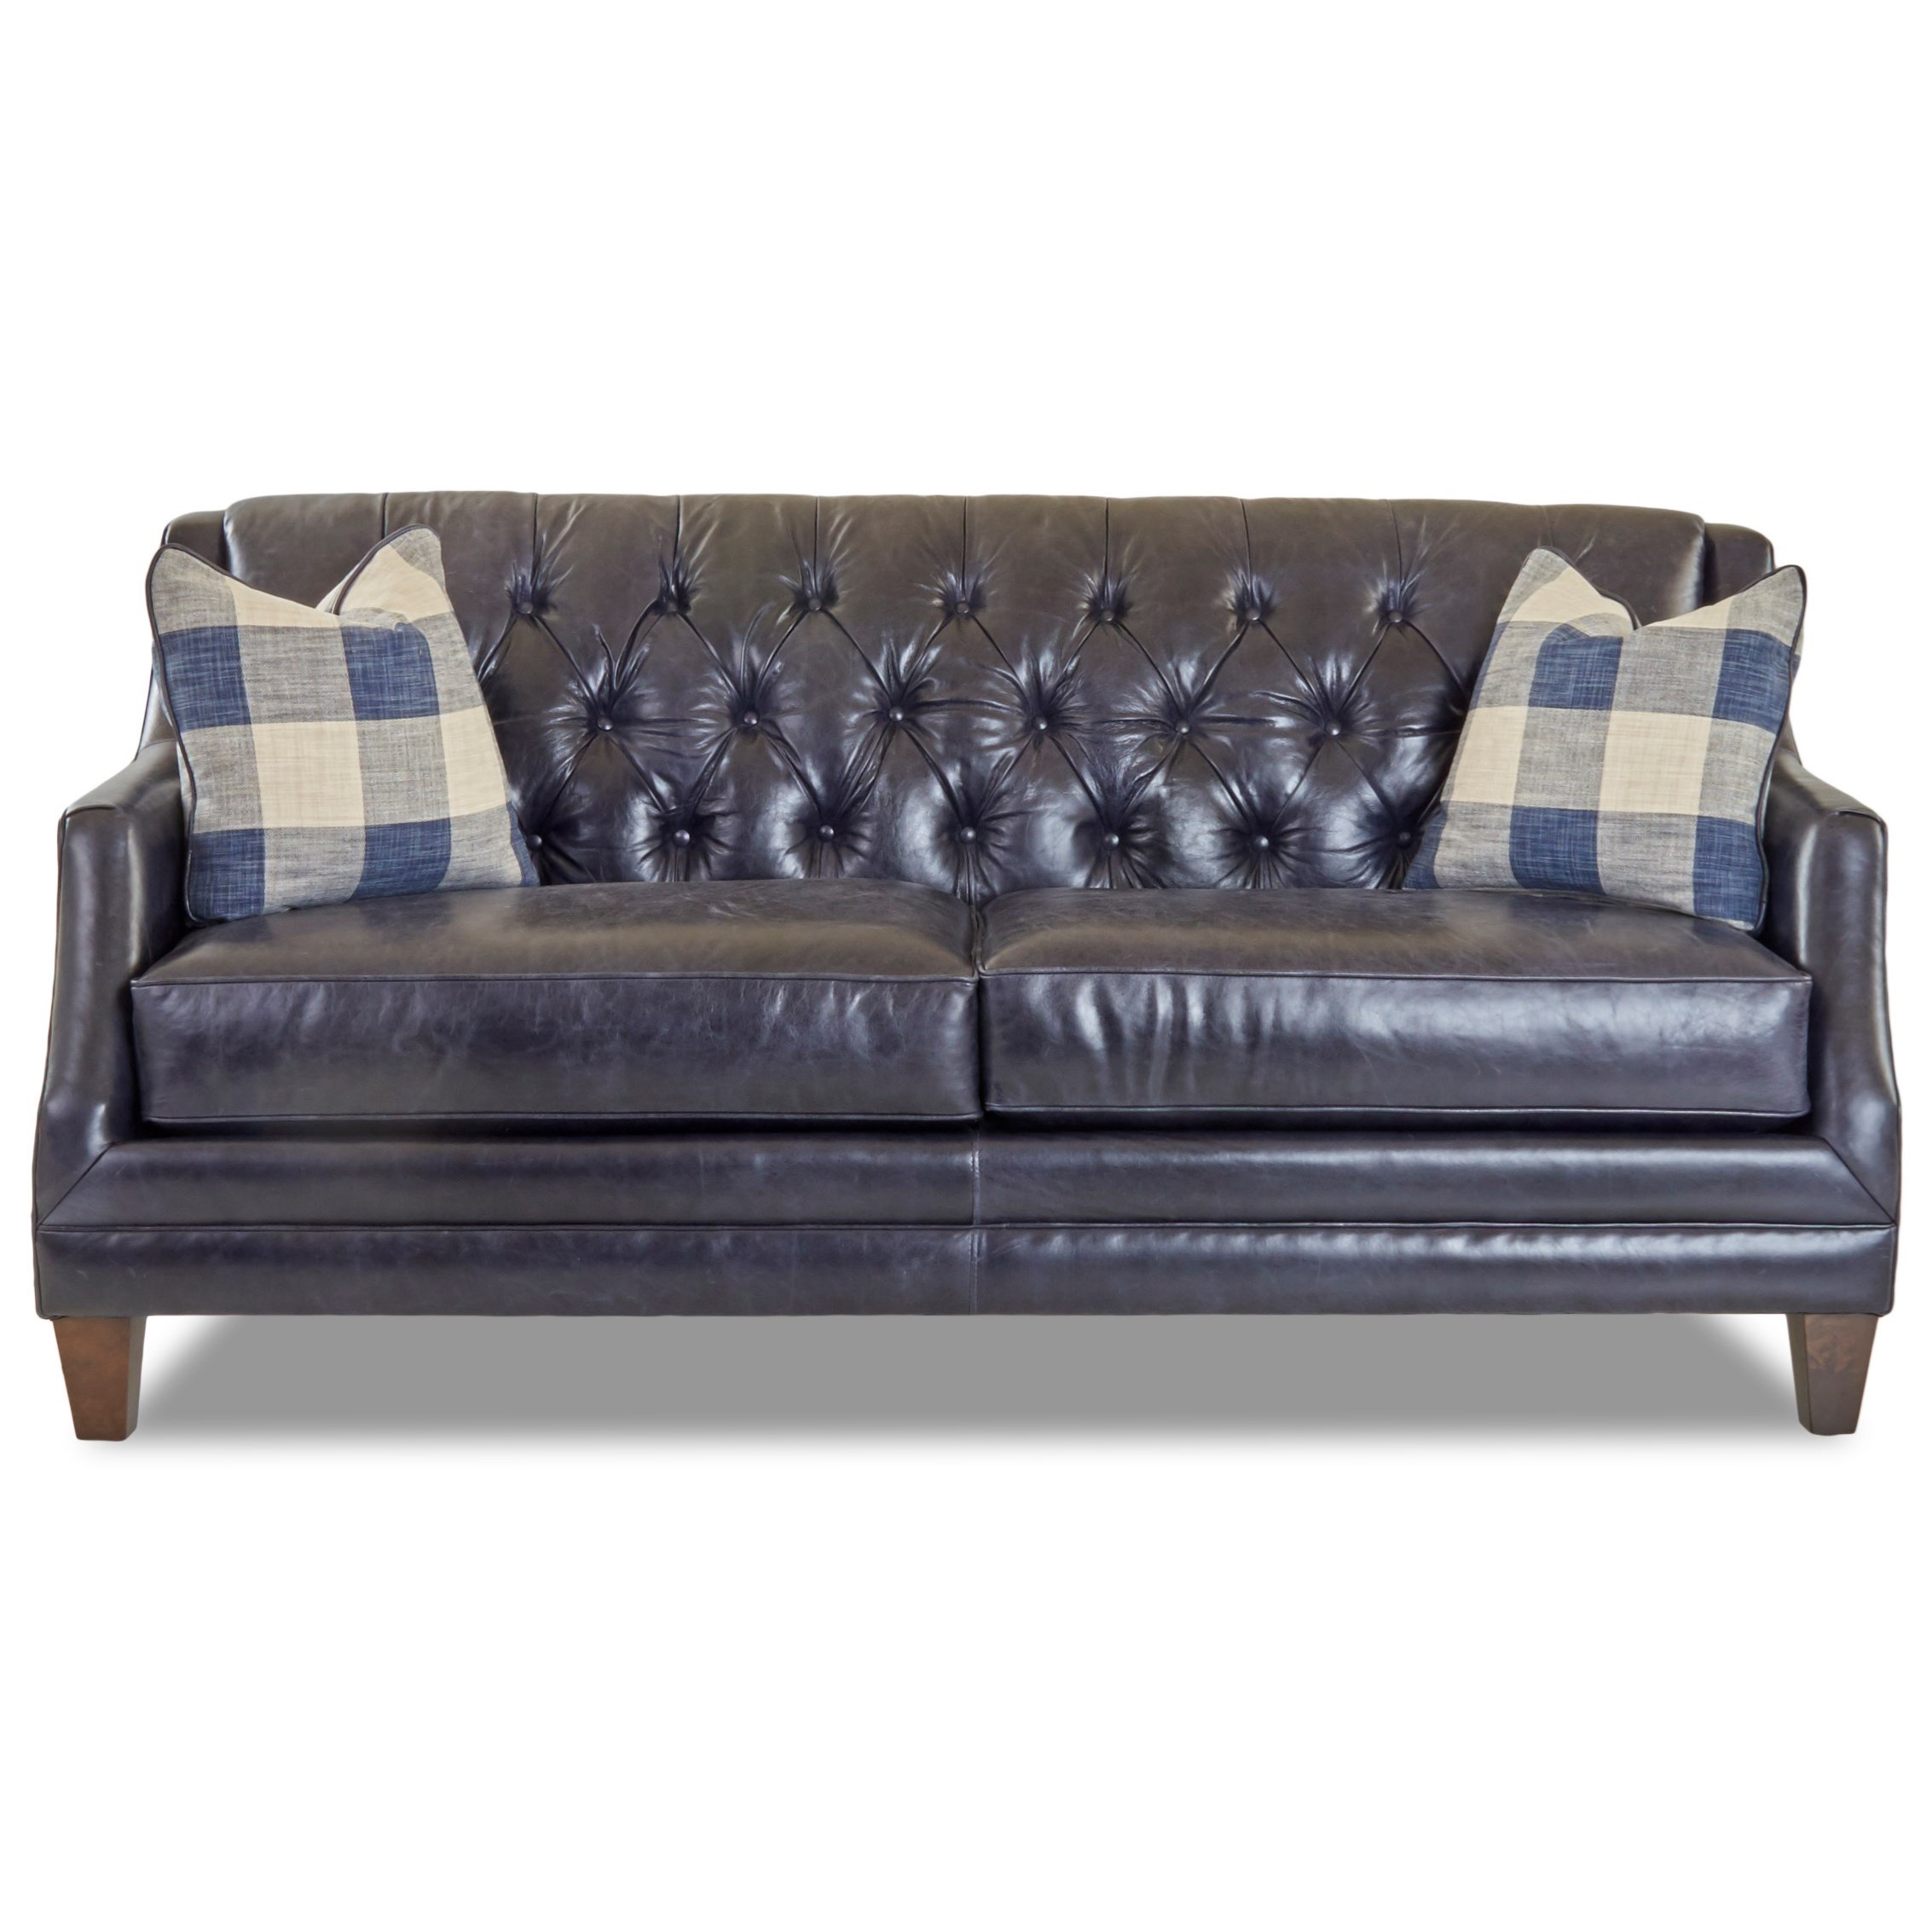 Pillows Traditional Sofa: Klaussner Buxton Traditional Tufted Sofa With Fabric Toss